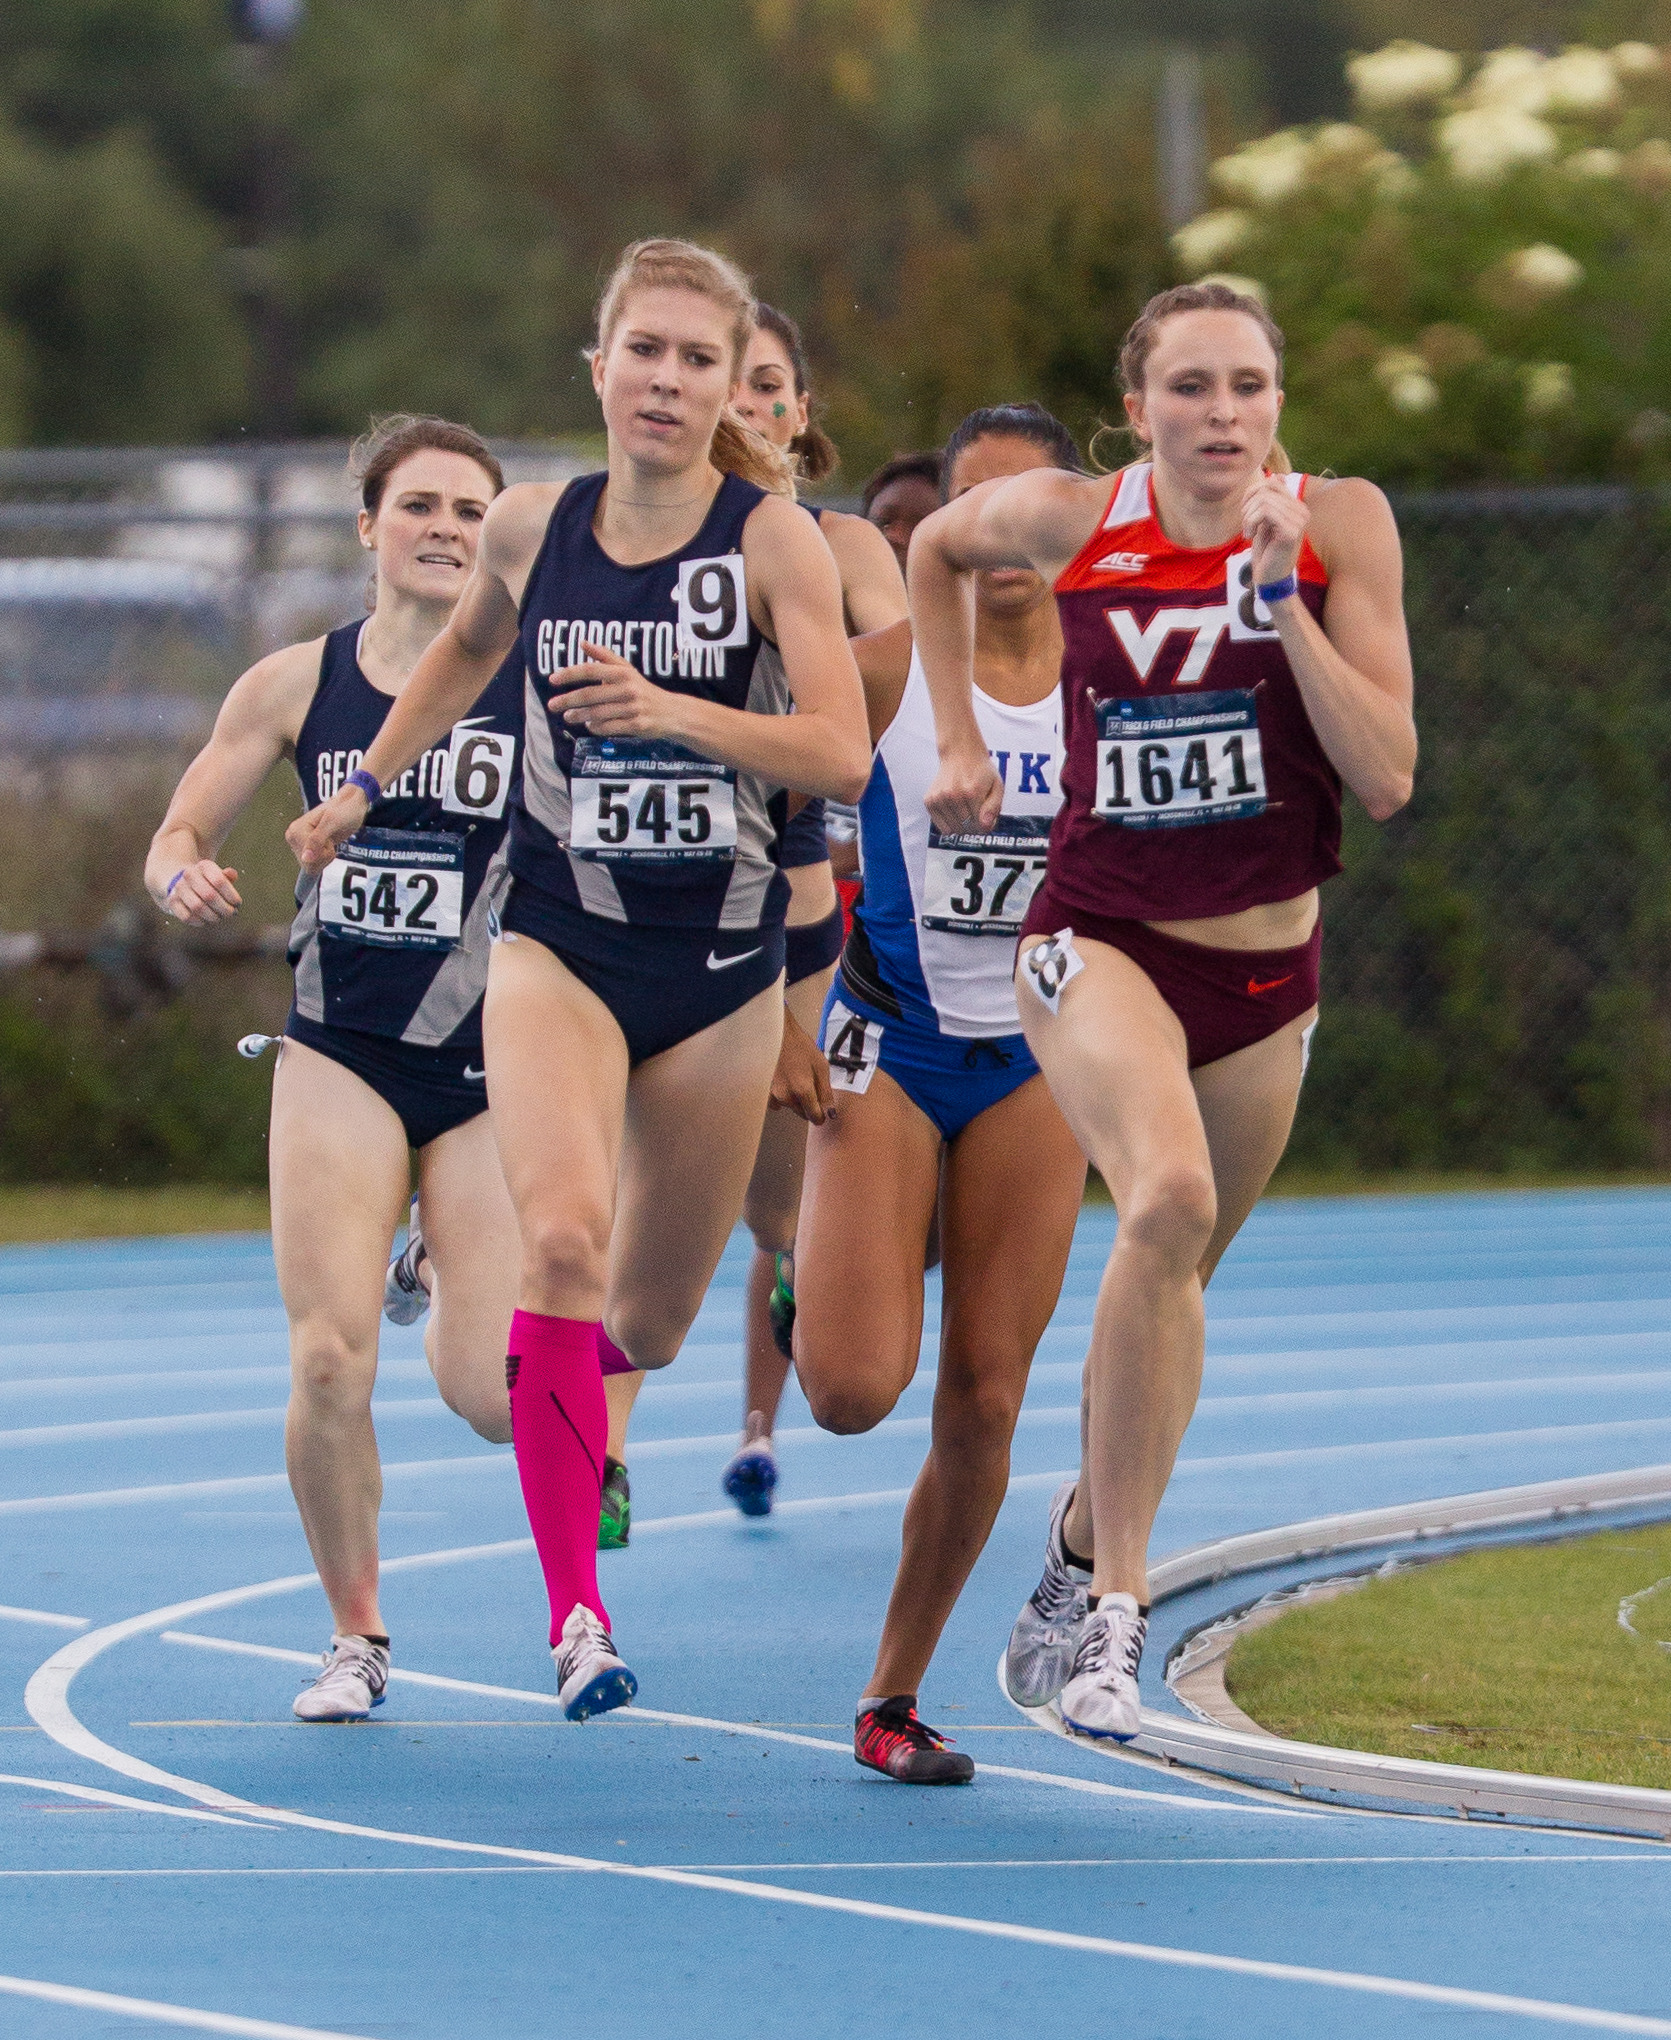 Sarah Schmidt (foreground) and Emma Keenan (Photo courtesy of Tom Connelly)